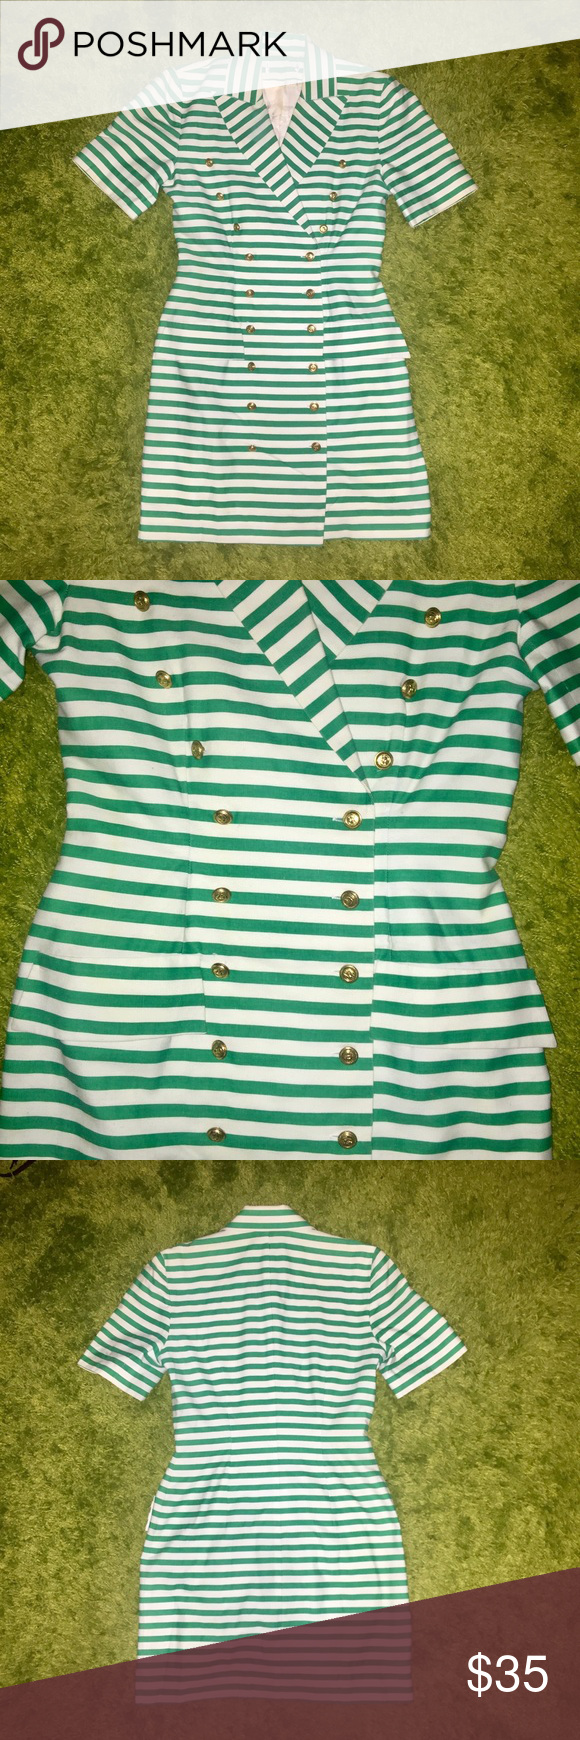 Vintage Striped Nautical Mini Dress sz4 This Vintage Green/White striped Nautical mini dress is perfect for summer, sz 4 its fits to the body and also can be worn as a blazer/jacket with buttons open, Super Cute!! Vintage Dresses Mini